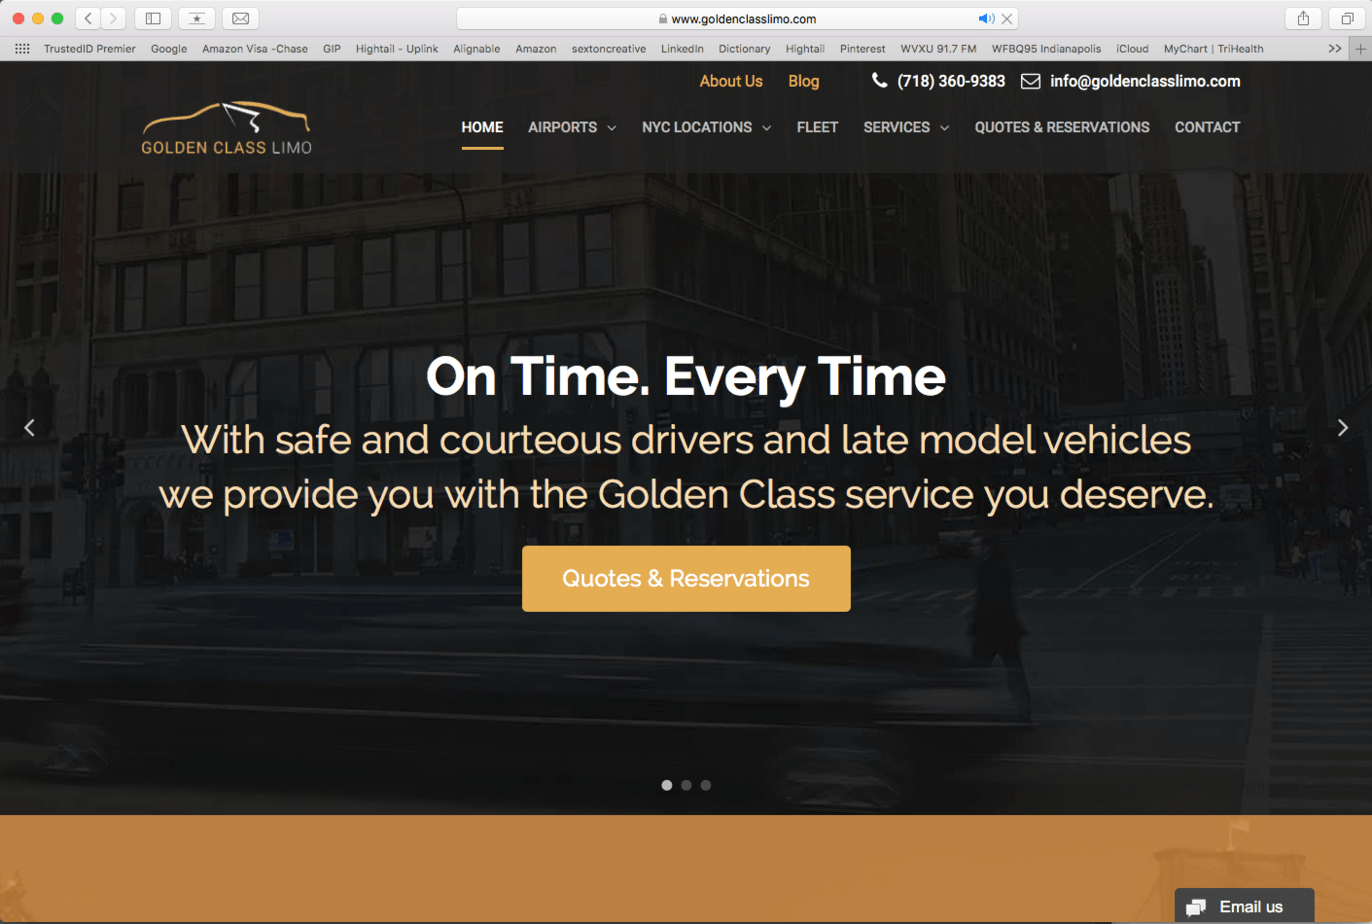 limo company example website